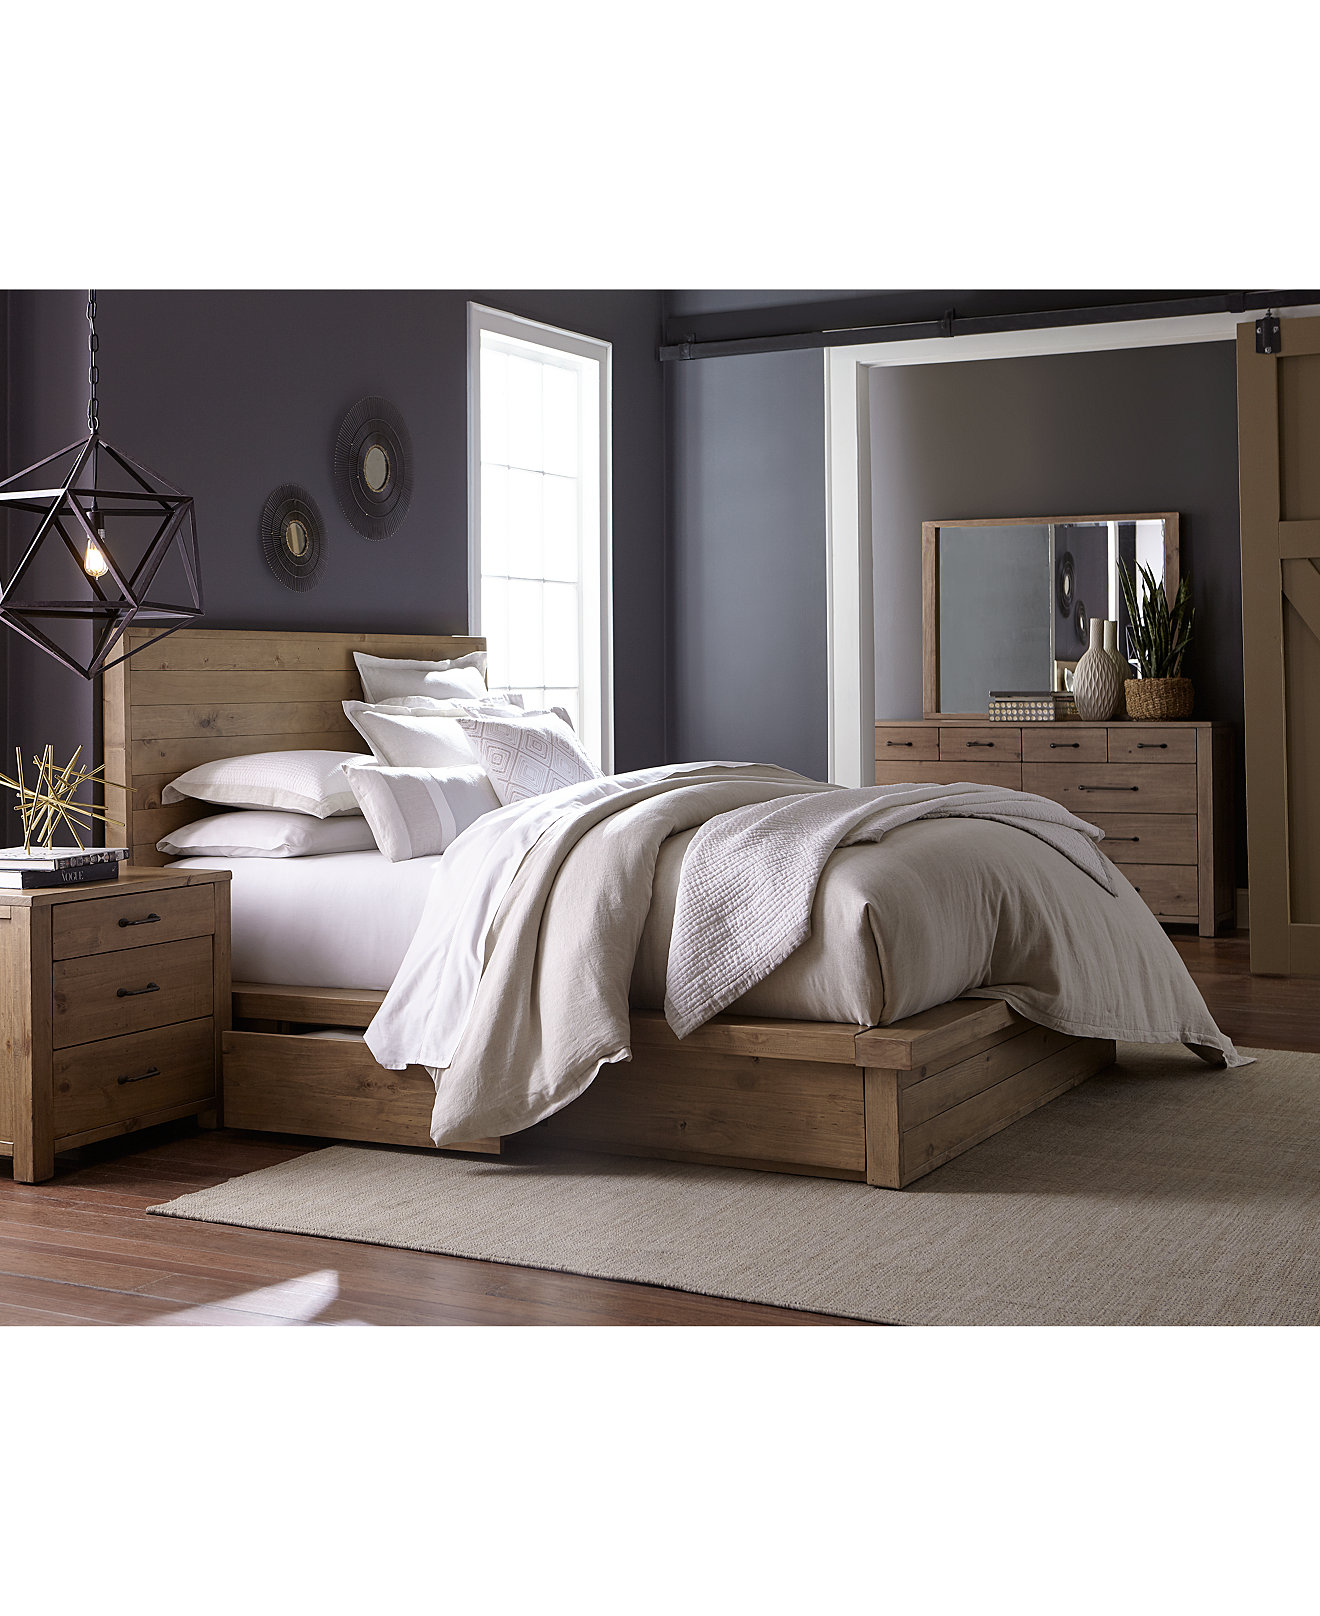 Macys Furniture Bedroom Abilene Solid Pine Storage Bedroom Furniture Collection Only At